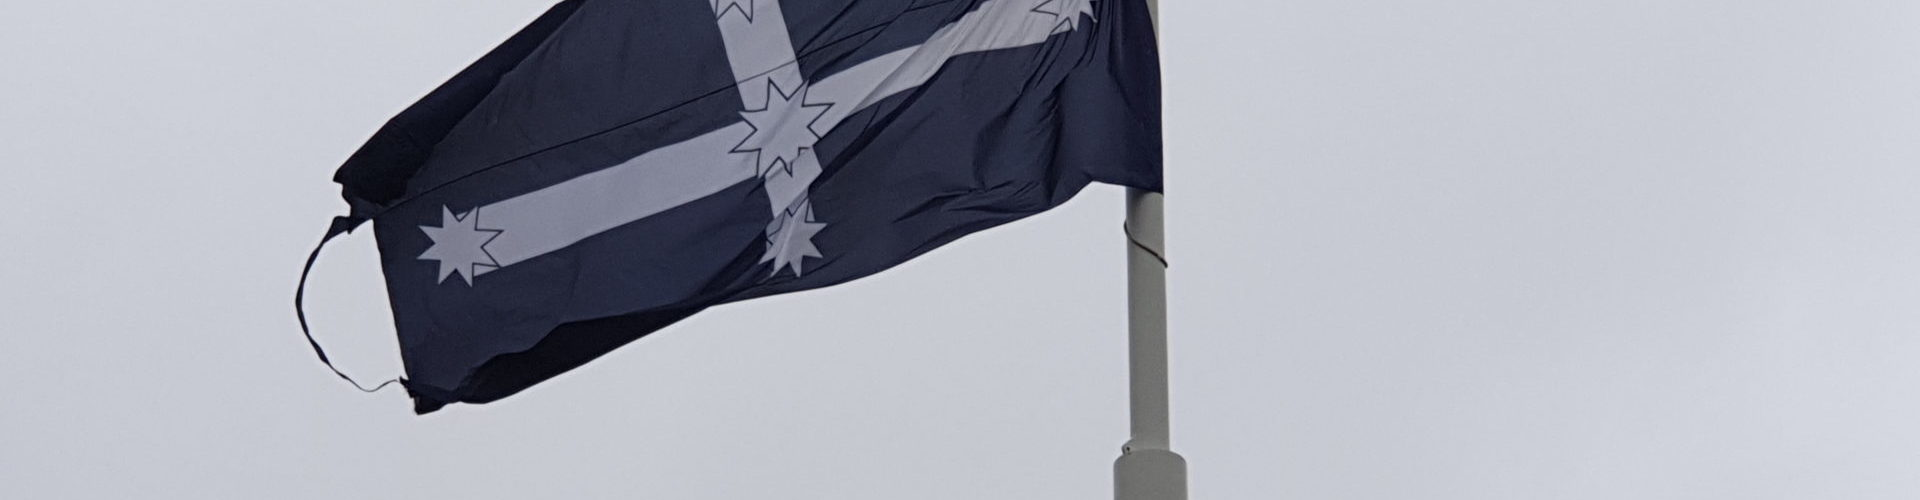 "Eureka Flag, designed by a Canadian gold miner by the name of ""Lieutenant"" Ross during the Eureka Stockade uprising in Ballarat, Victoria, in 1854. The blue background is believed to represent the blue shirts worn by many of the diggers, rather than represent the sky as is commonly thought."